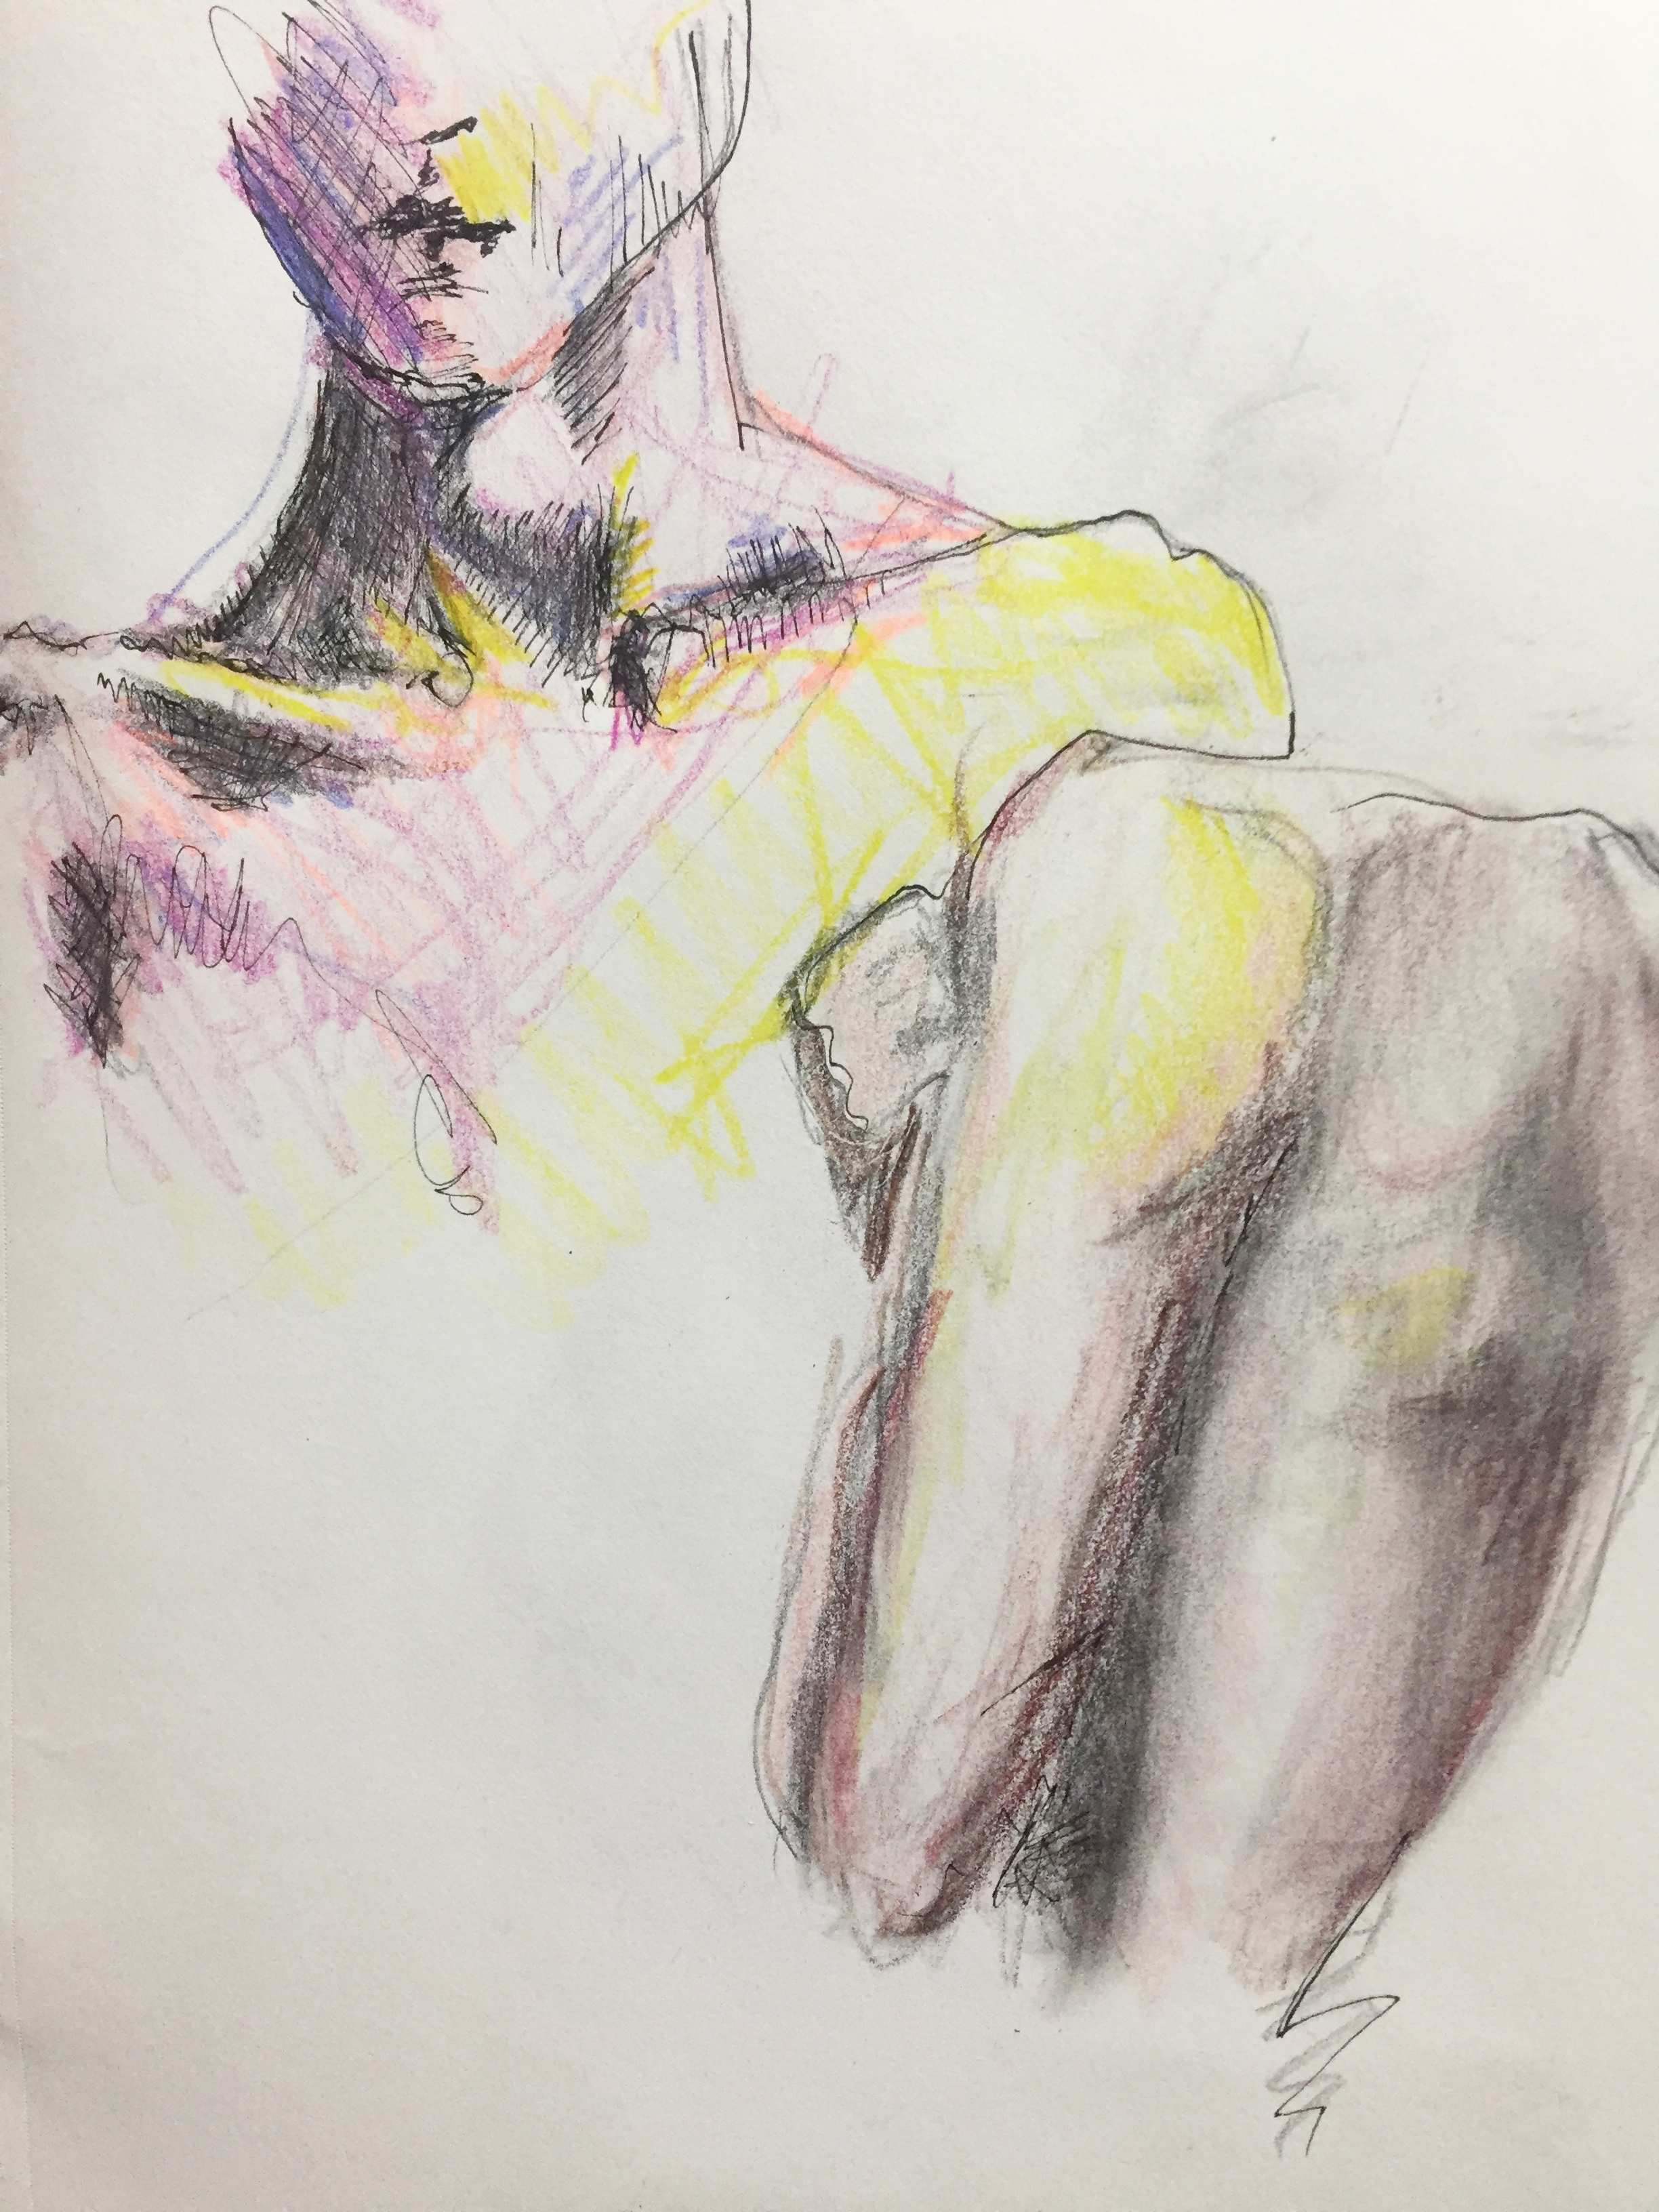 Life Studies, pen and pencil crayon on paper, 2016